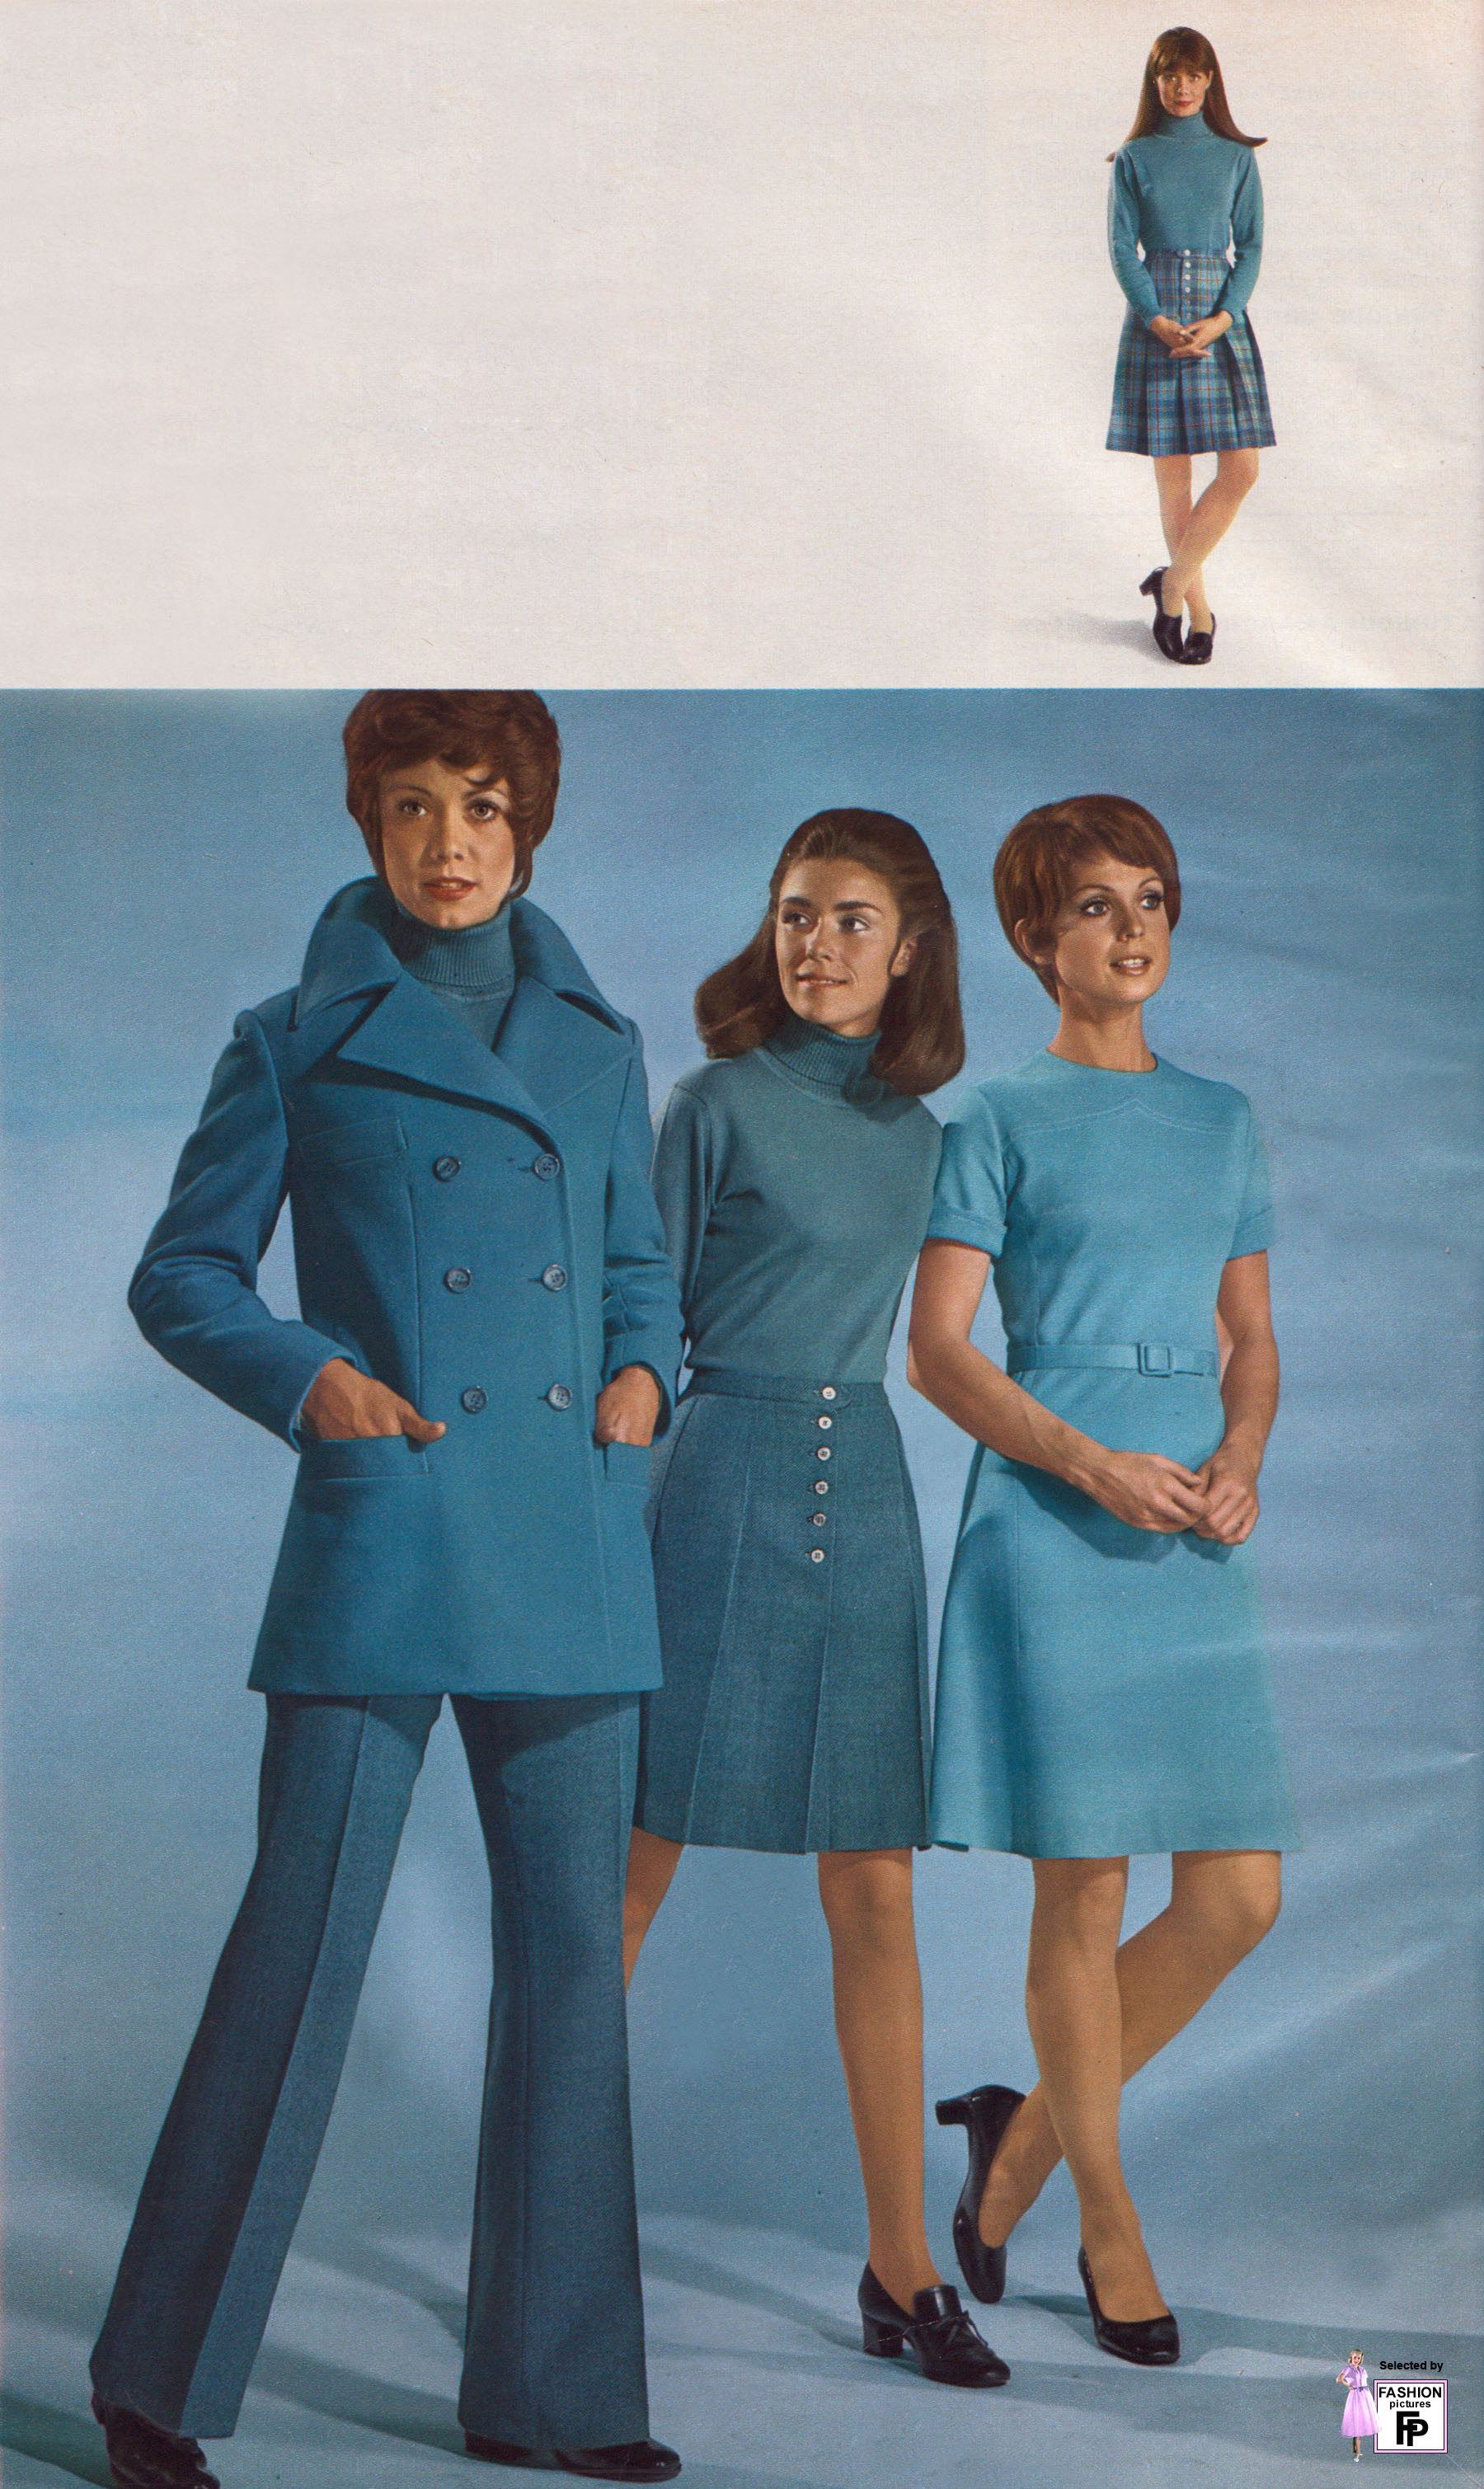 Fashion-pictures. Style galleries from the 50s 60s 70s ...